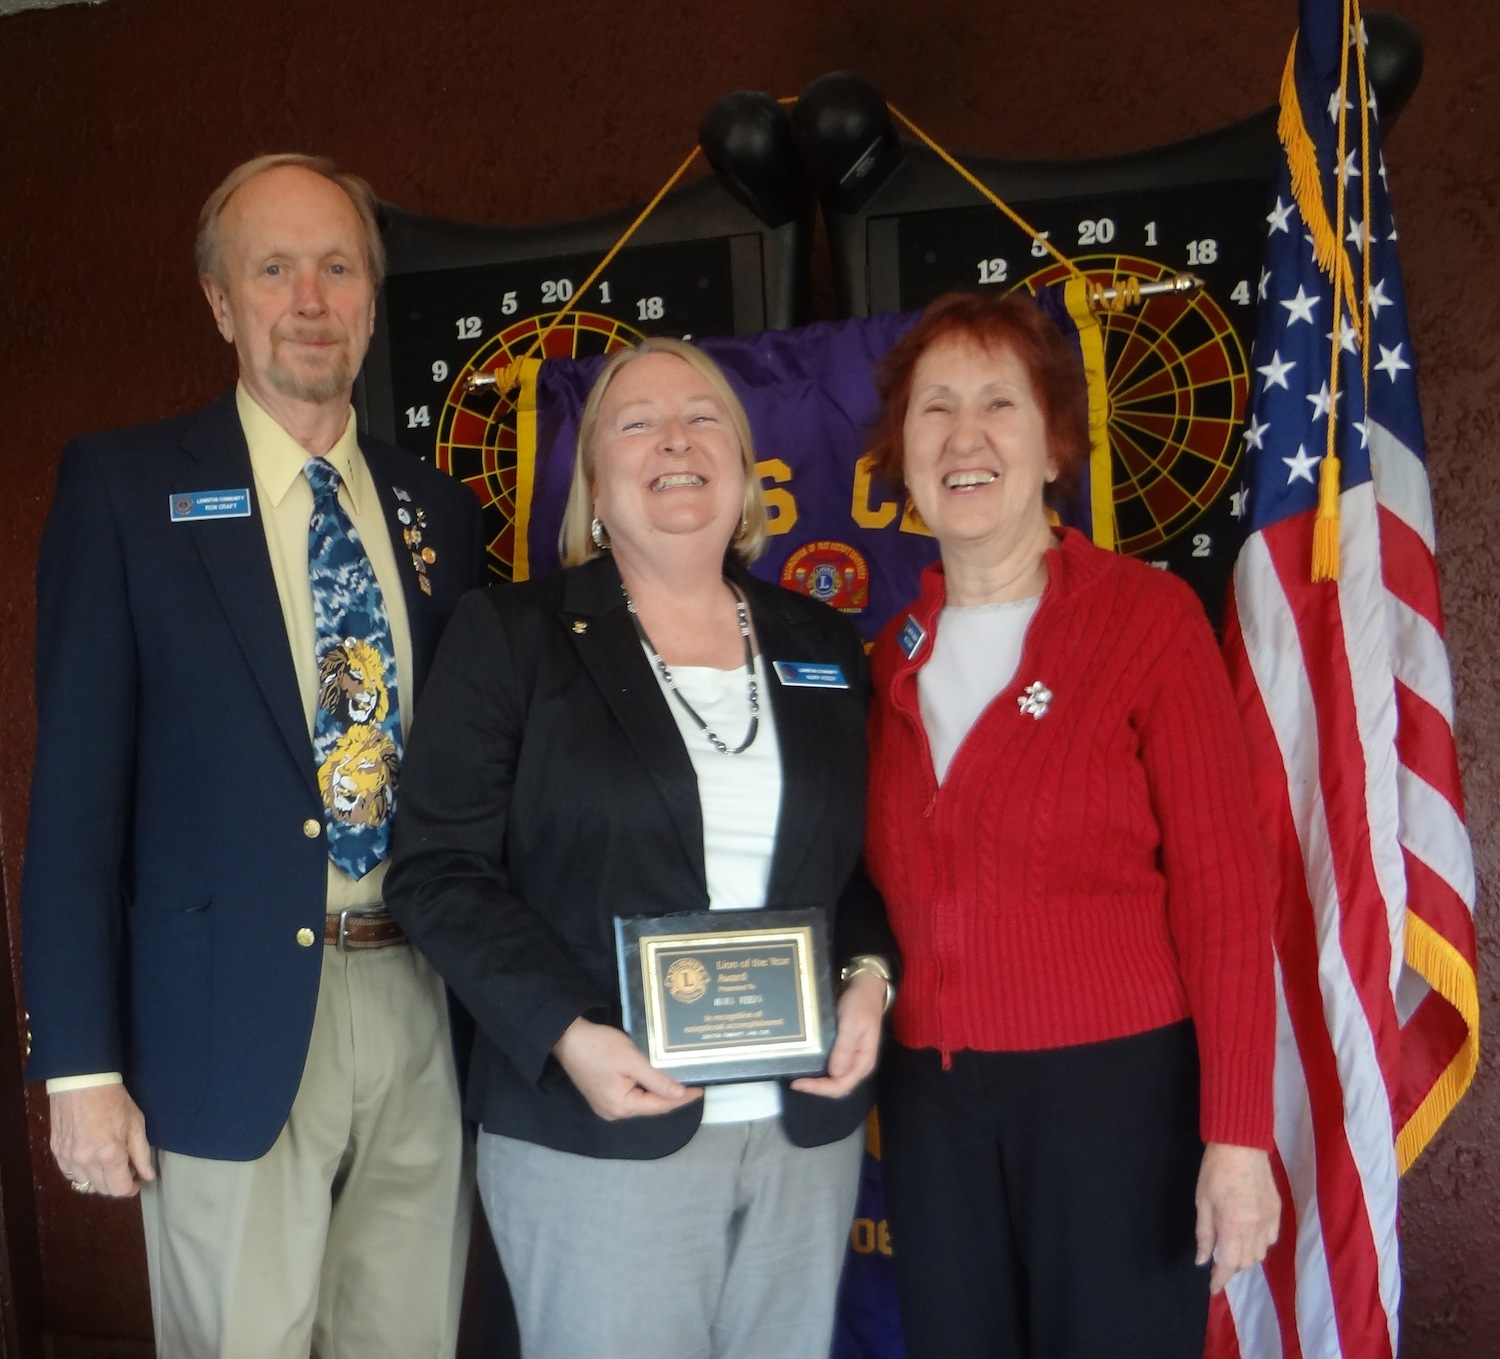 Lewiston Lions Club President-elect Ron Craft is pictured with Lion of the Year Mary Reedy and outgoing President Millie Gibbs.